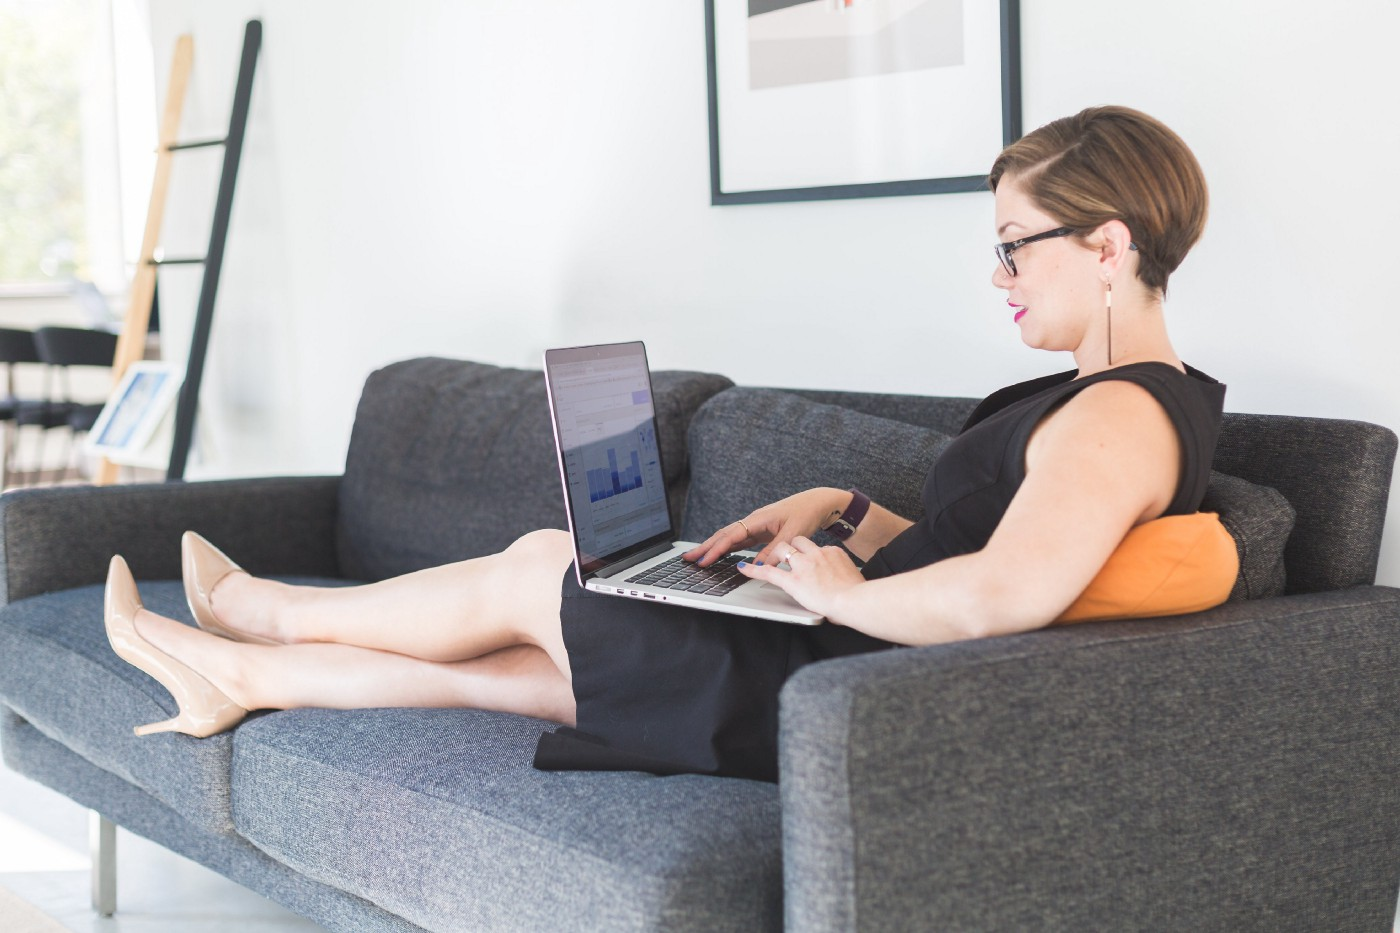 Businesswoman lounging on a couch with her laptop